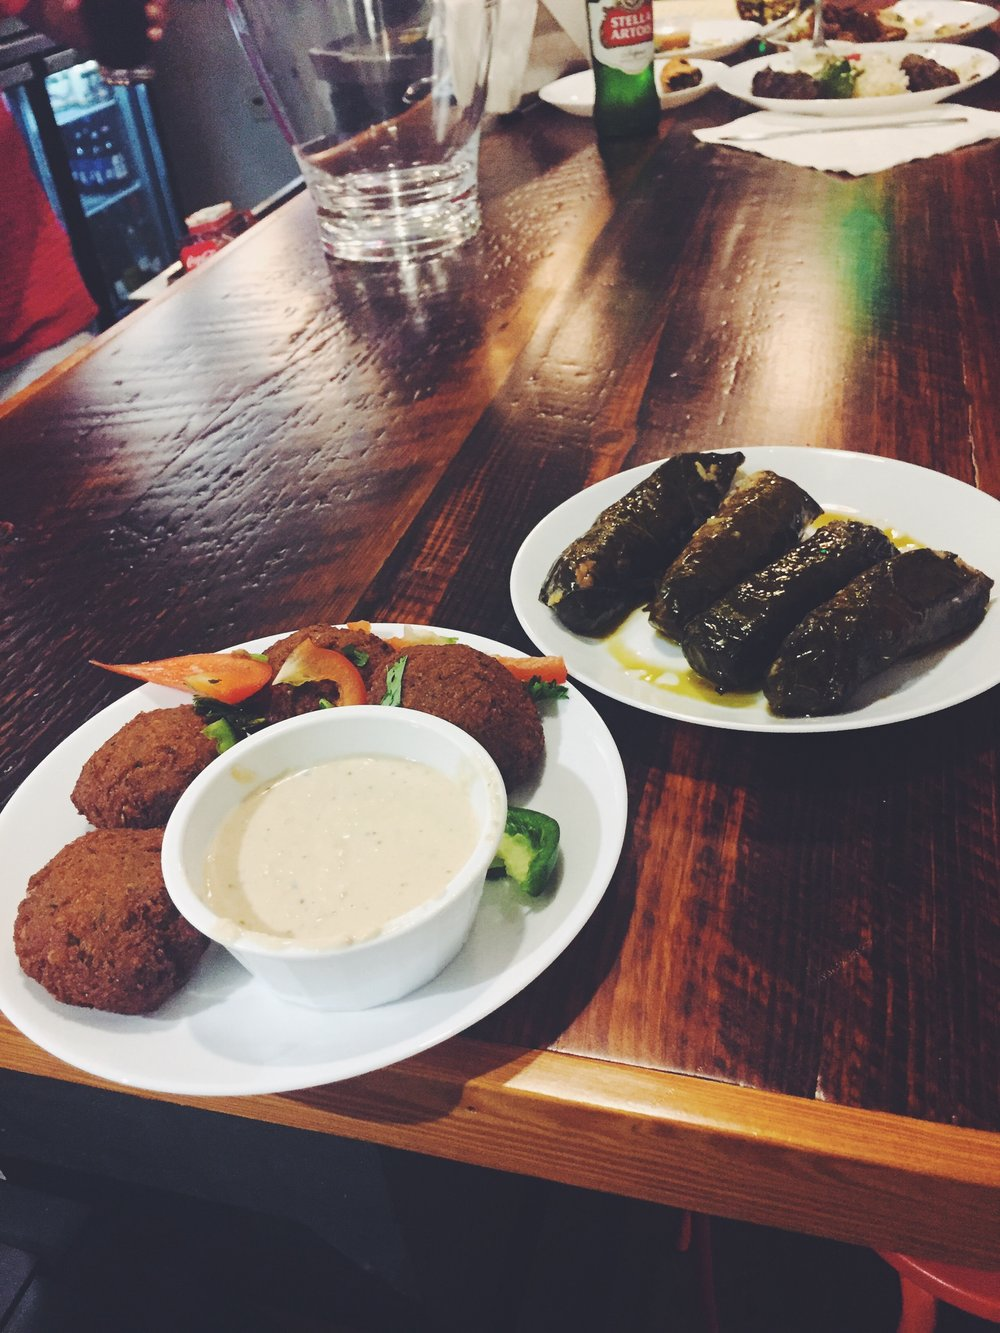 Falafel and stuffed grape leaves.